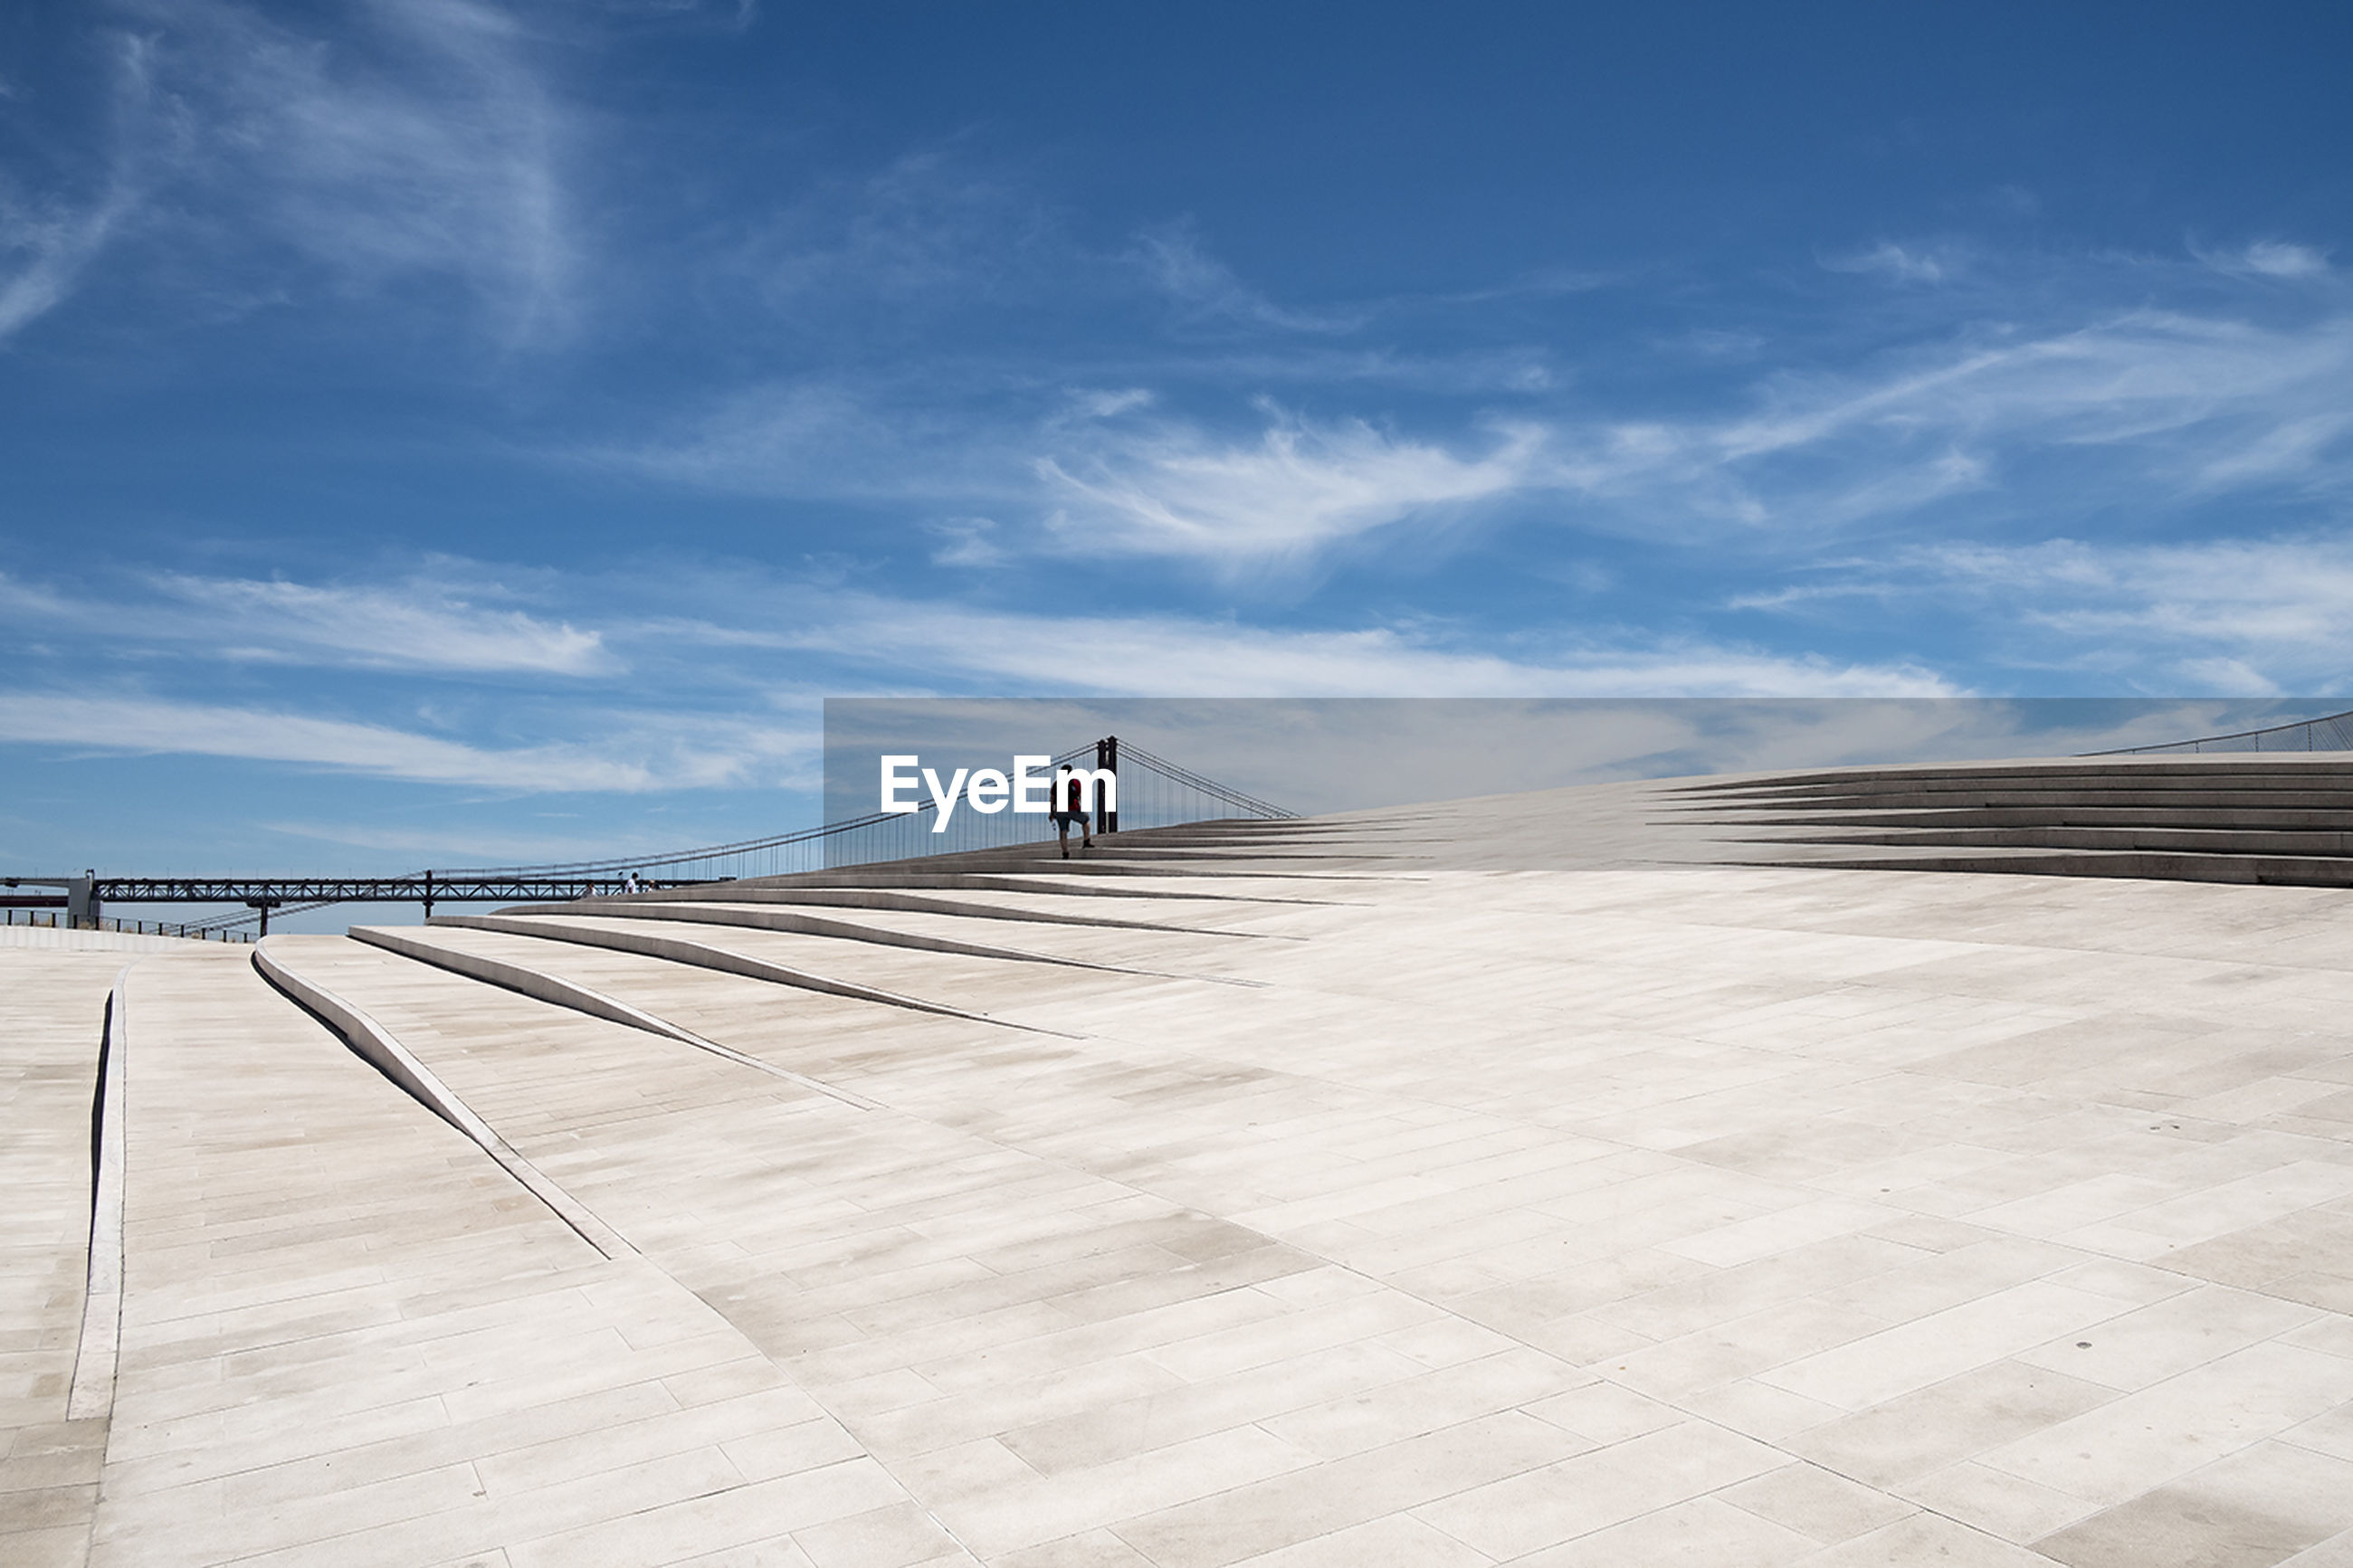 Distant view of person at maat museum against blue sky during sunny day